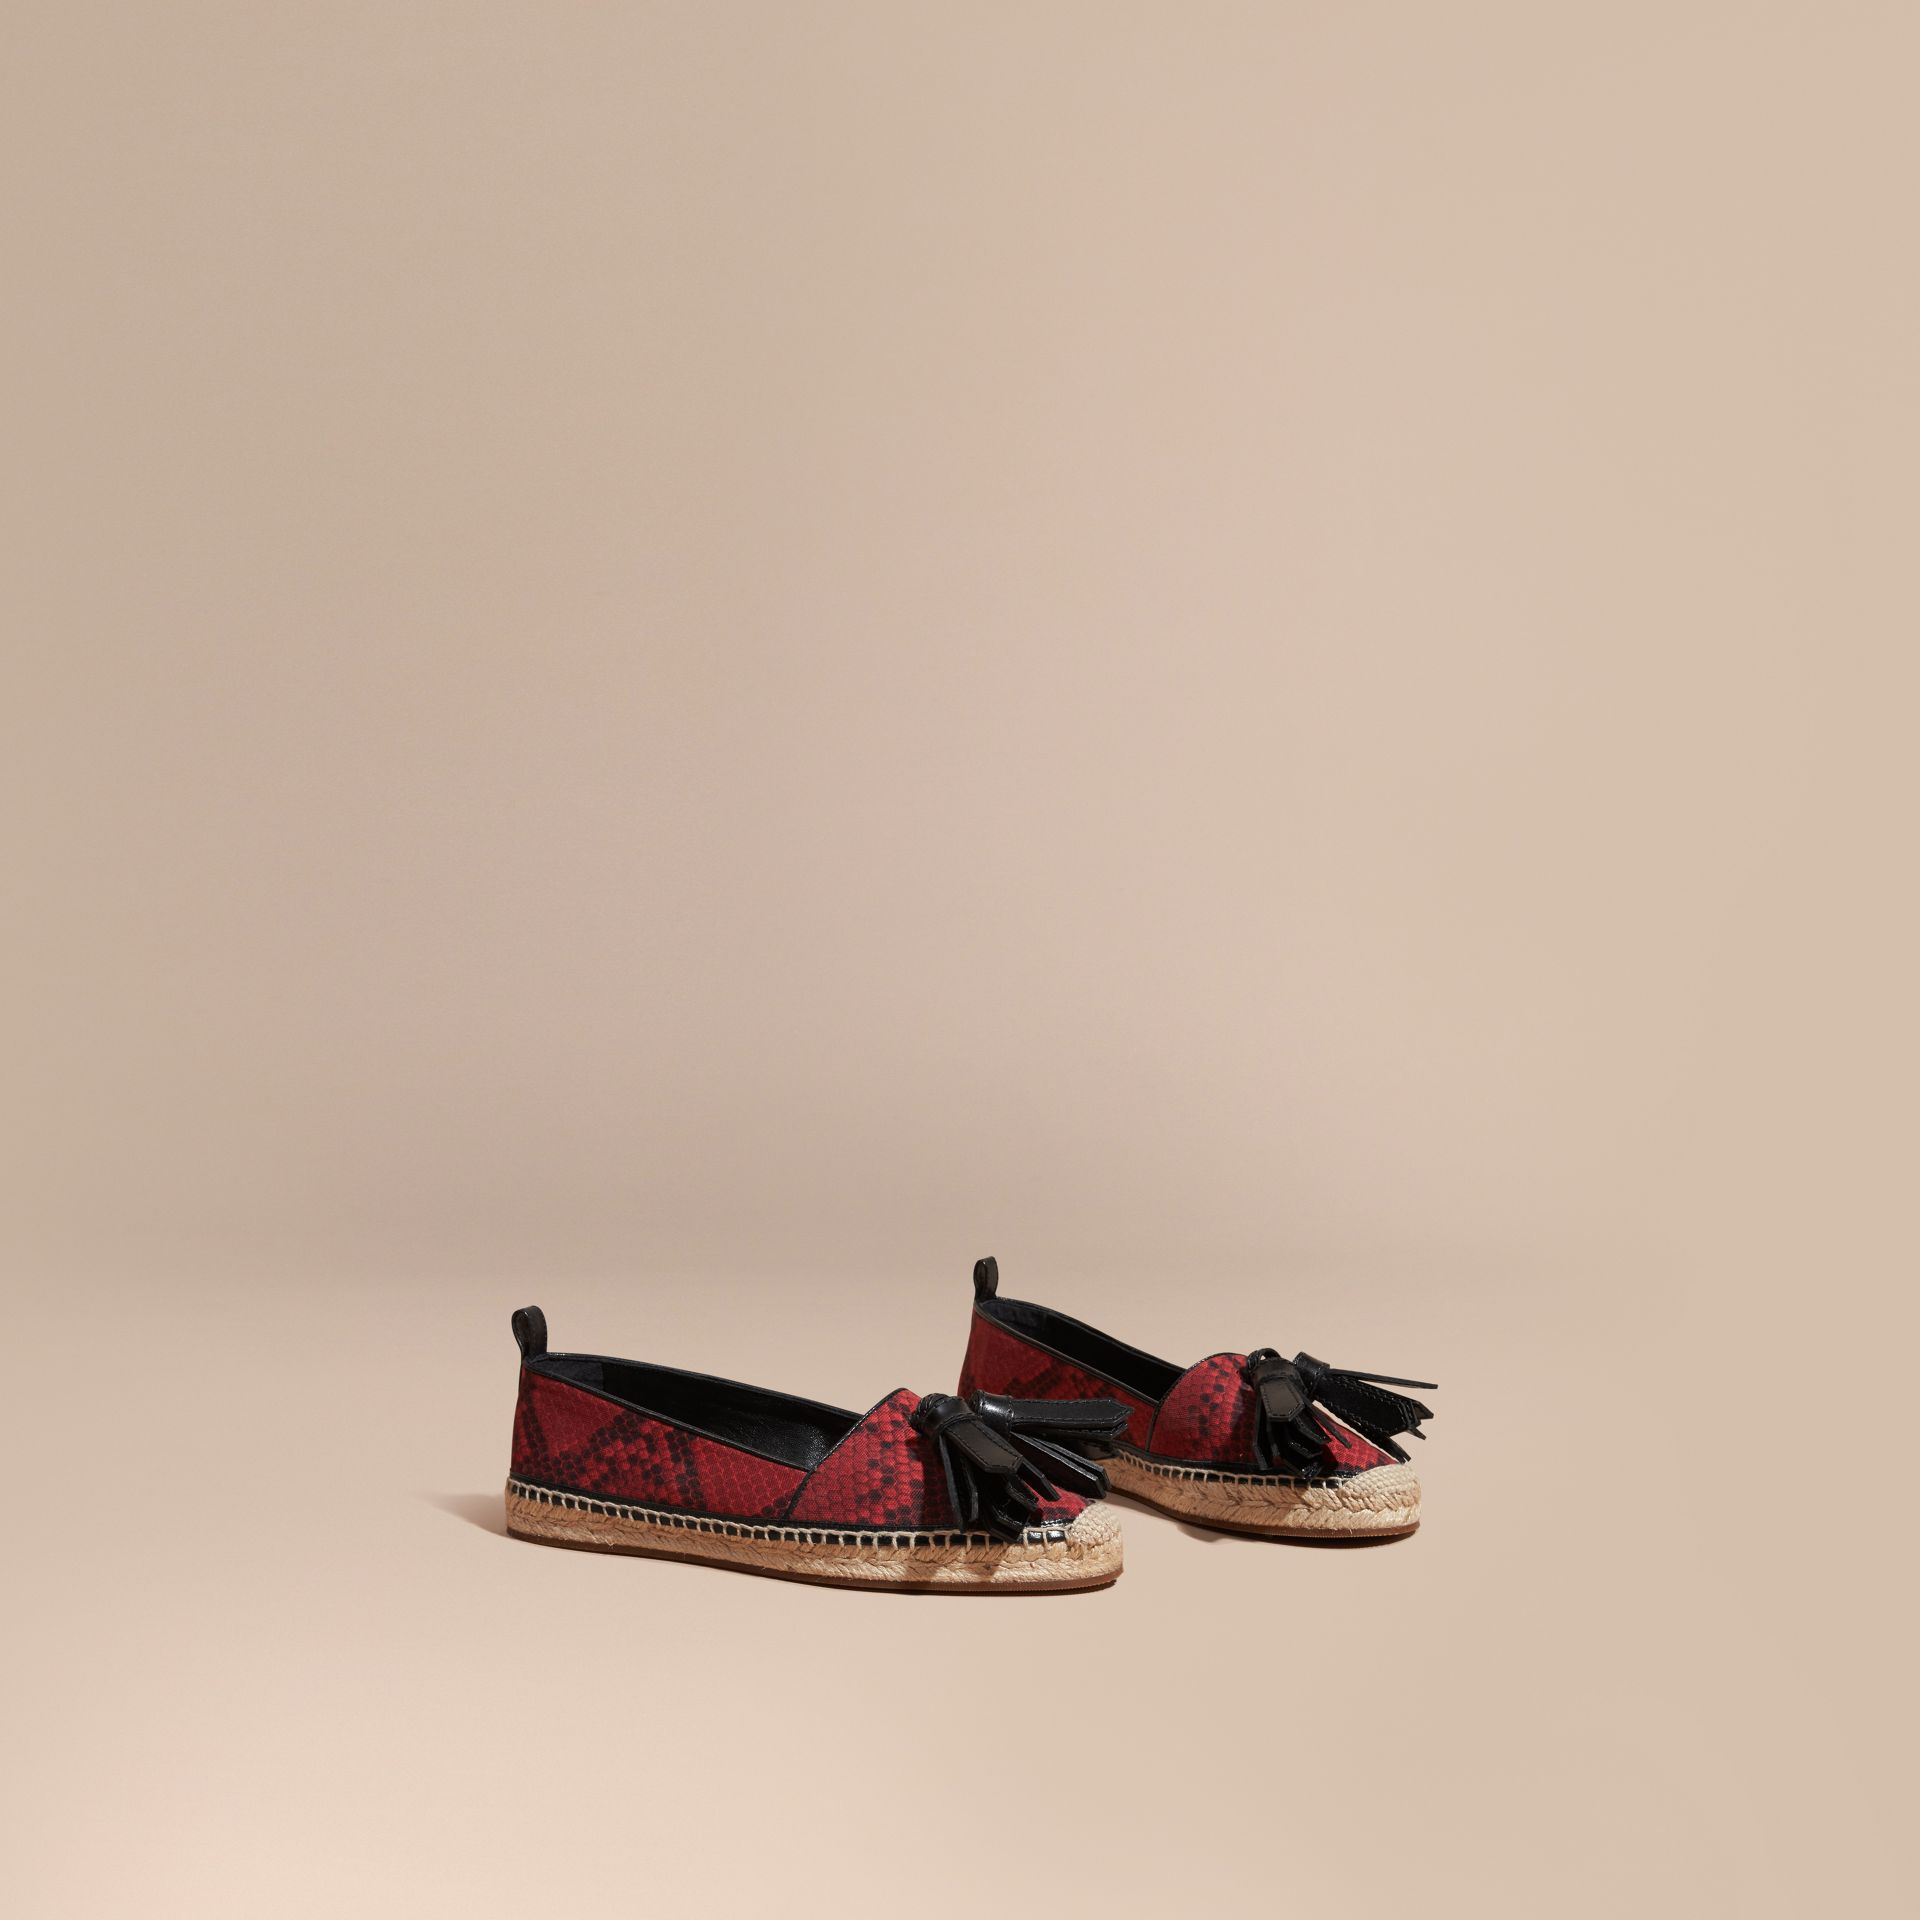 Windsor red Tasselled Python Print Cotton and Leather Espadrilles Windsor Red - gallery image 1